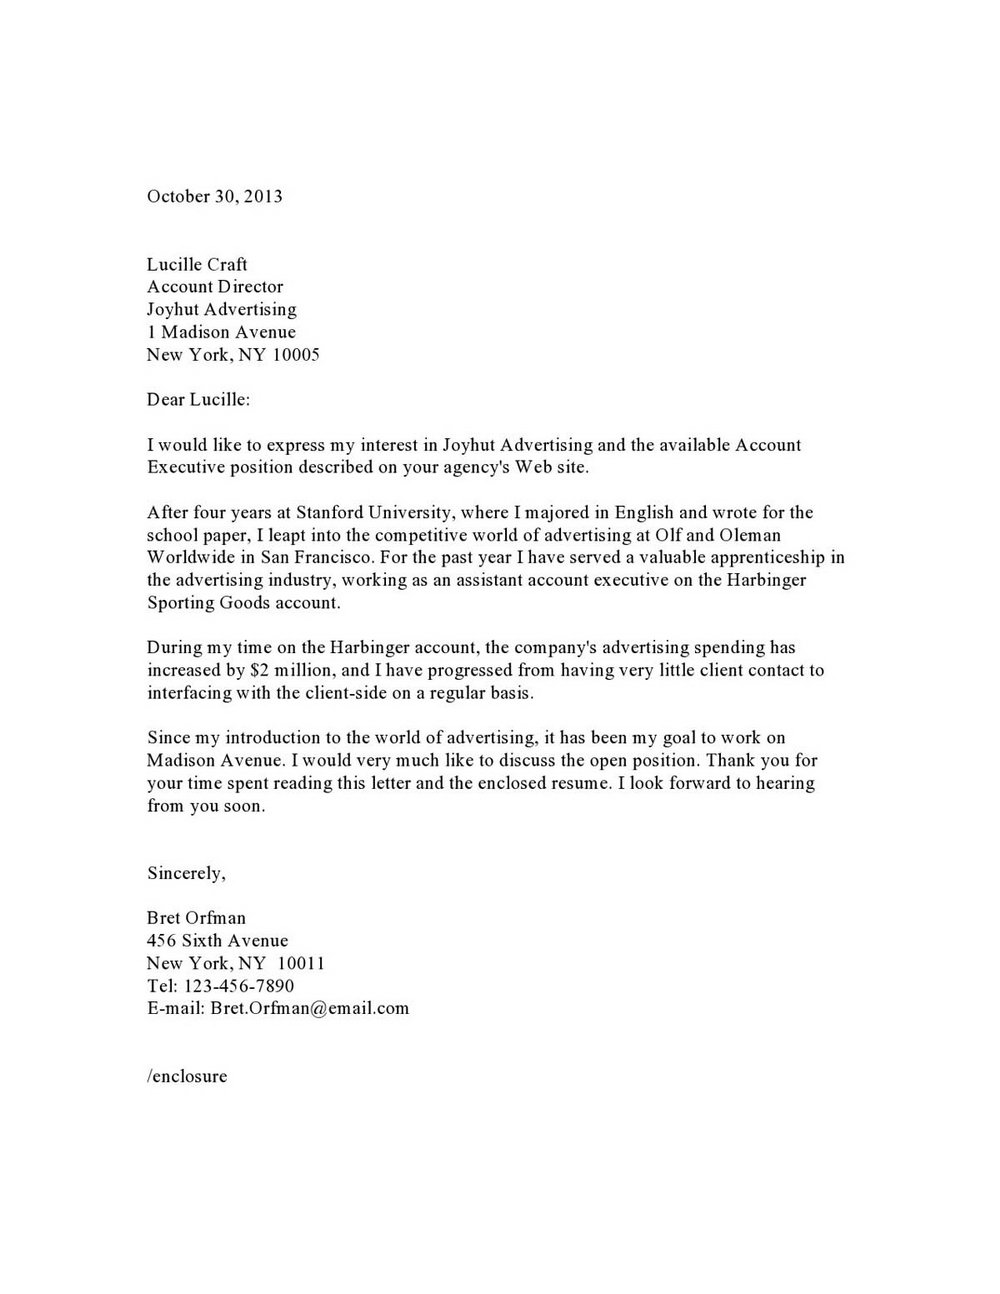 Cover Letter Sample Pdf Free Download